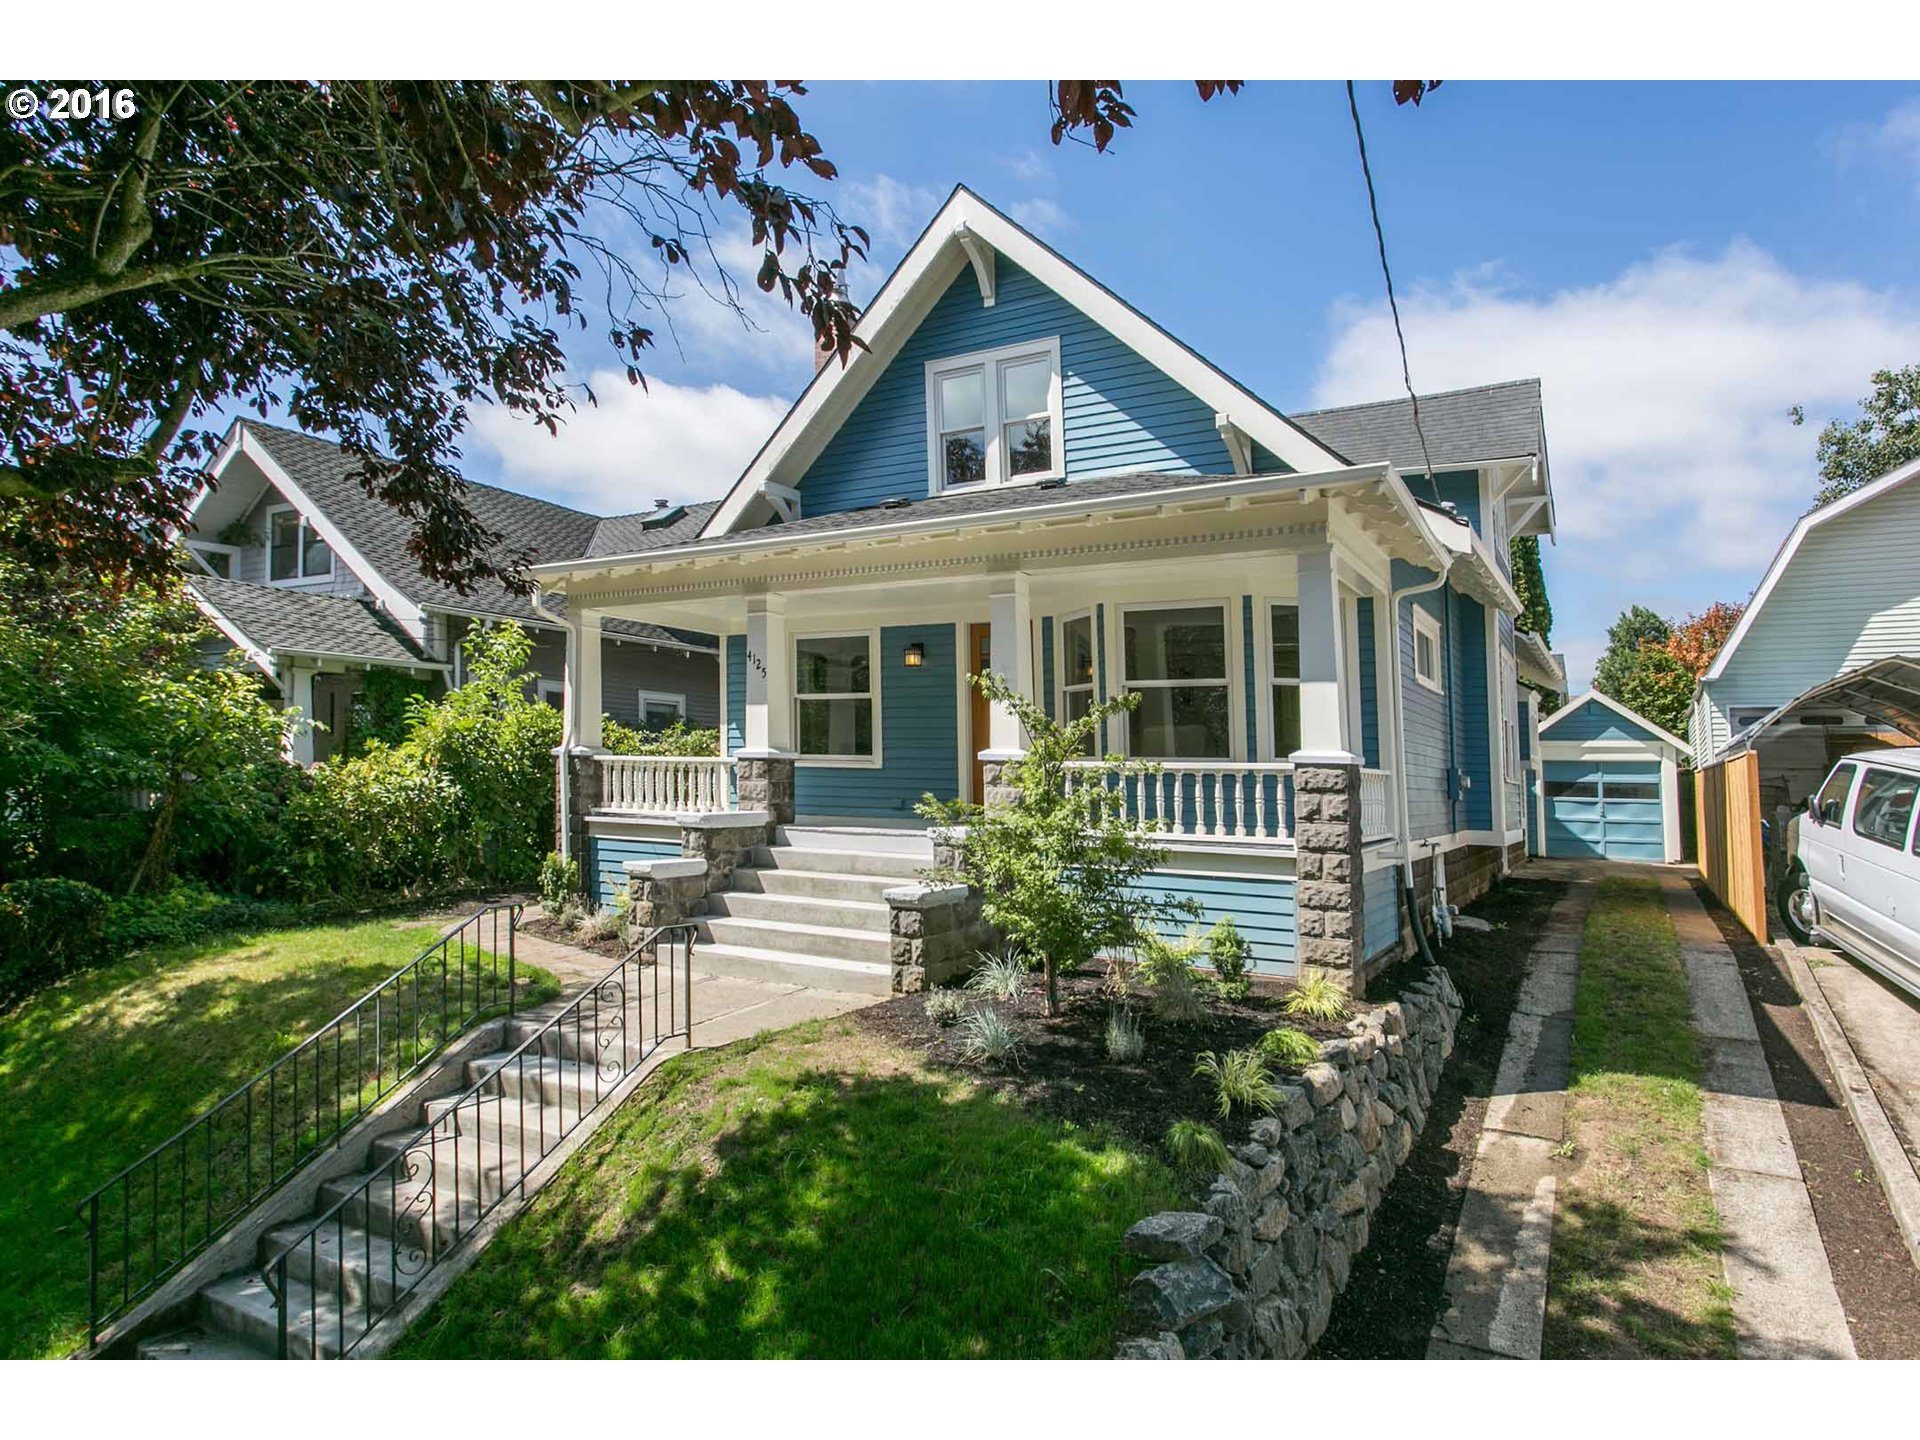 4125 N COLONIAL AVE, Portland OR 97217